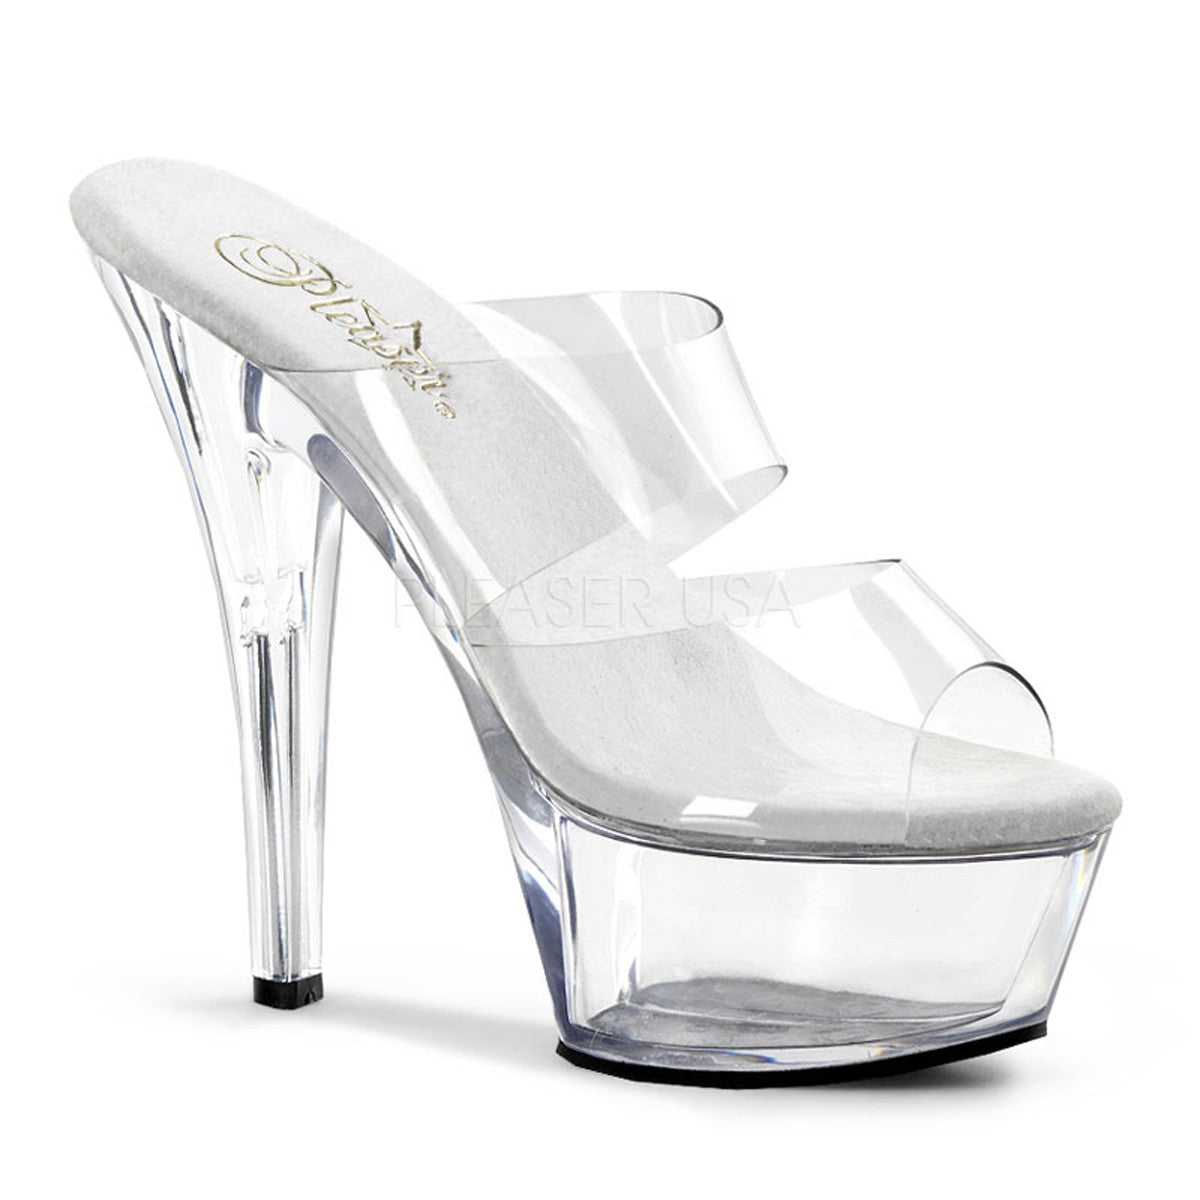 PLEASER KISS-202 Clear Platform Sandals - Shoecup.com - 1